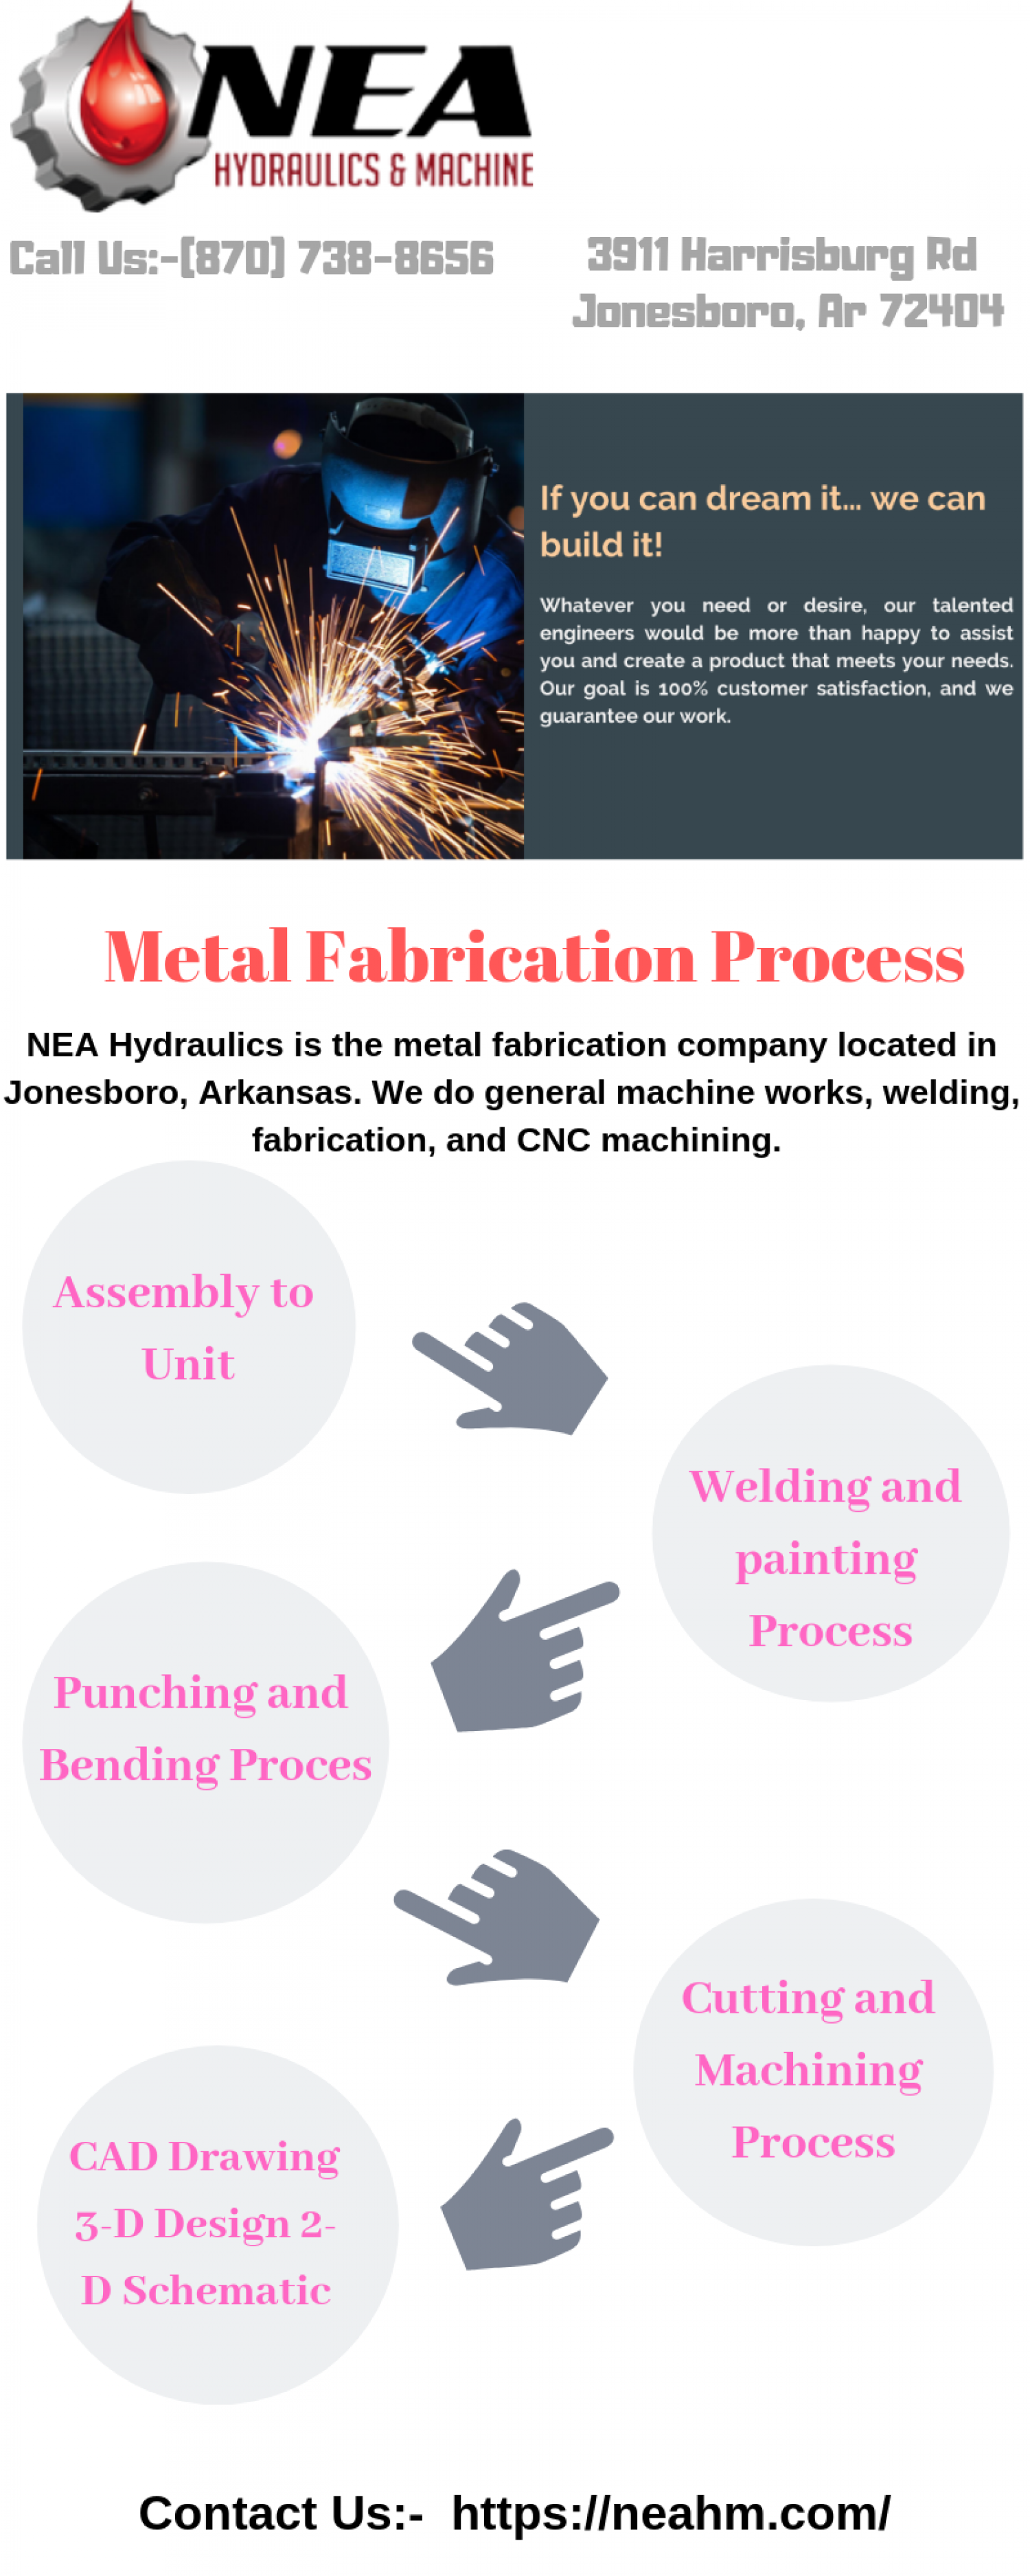 What are the common Metal Fabrication Processes and their Applications?